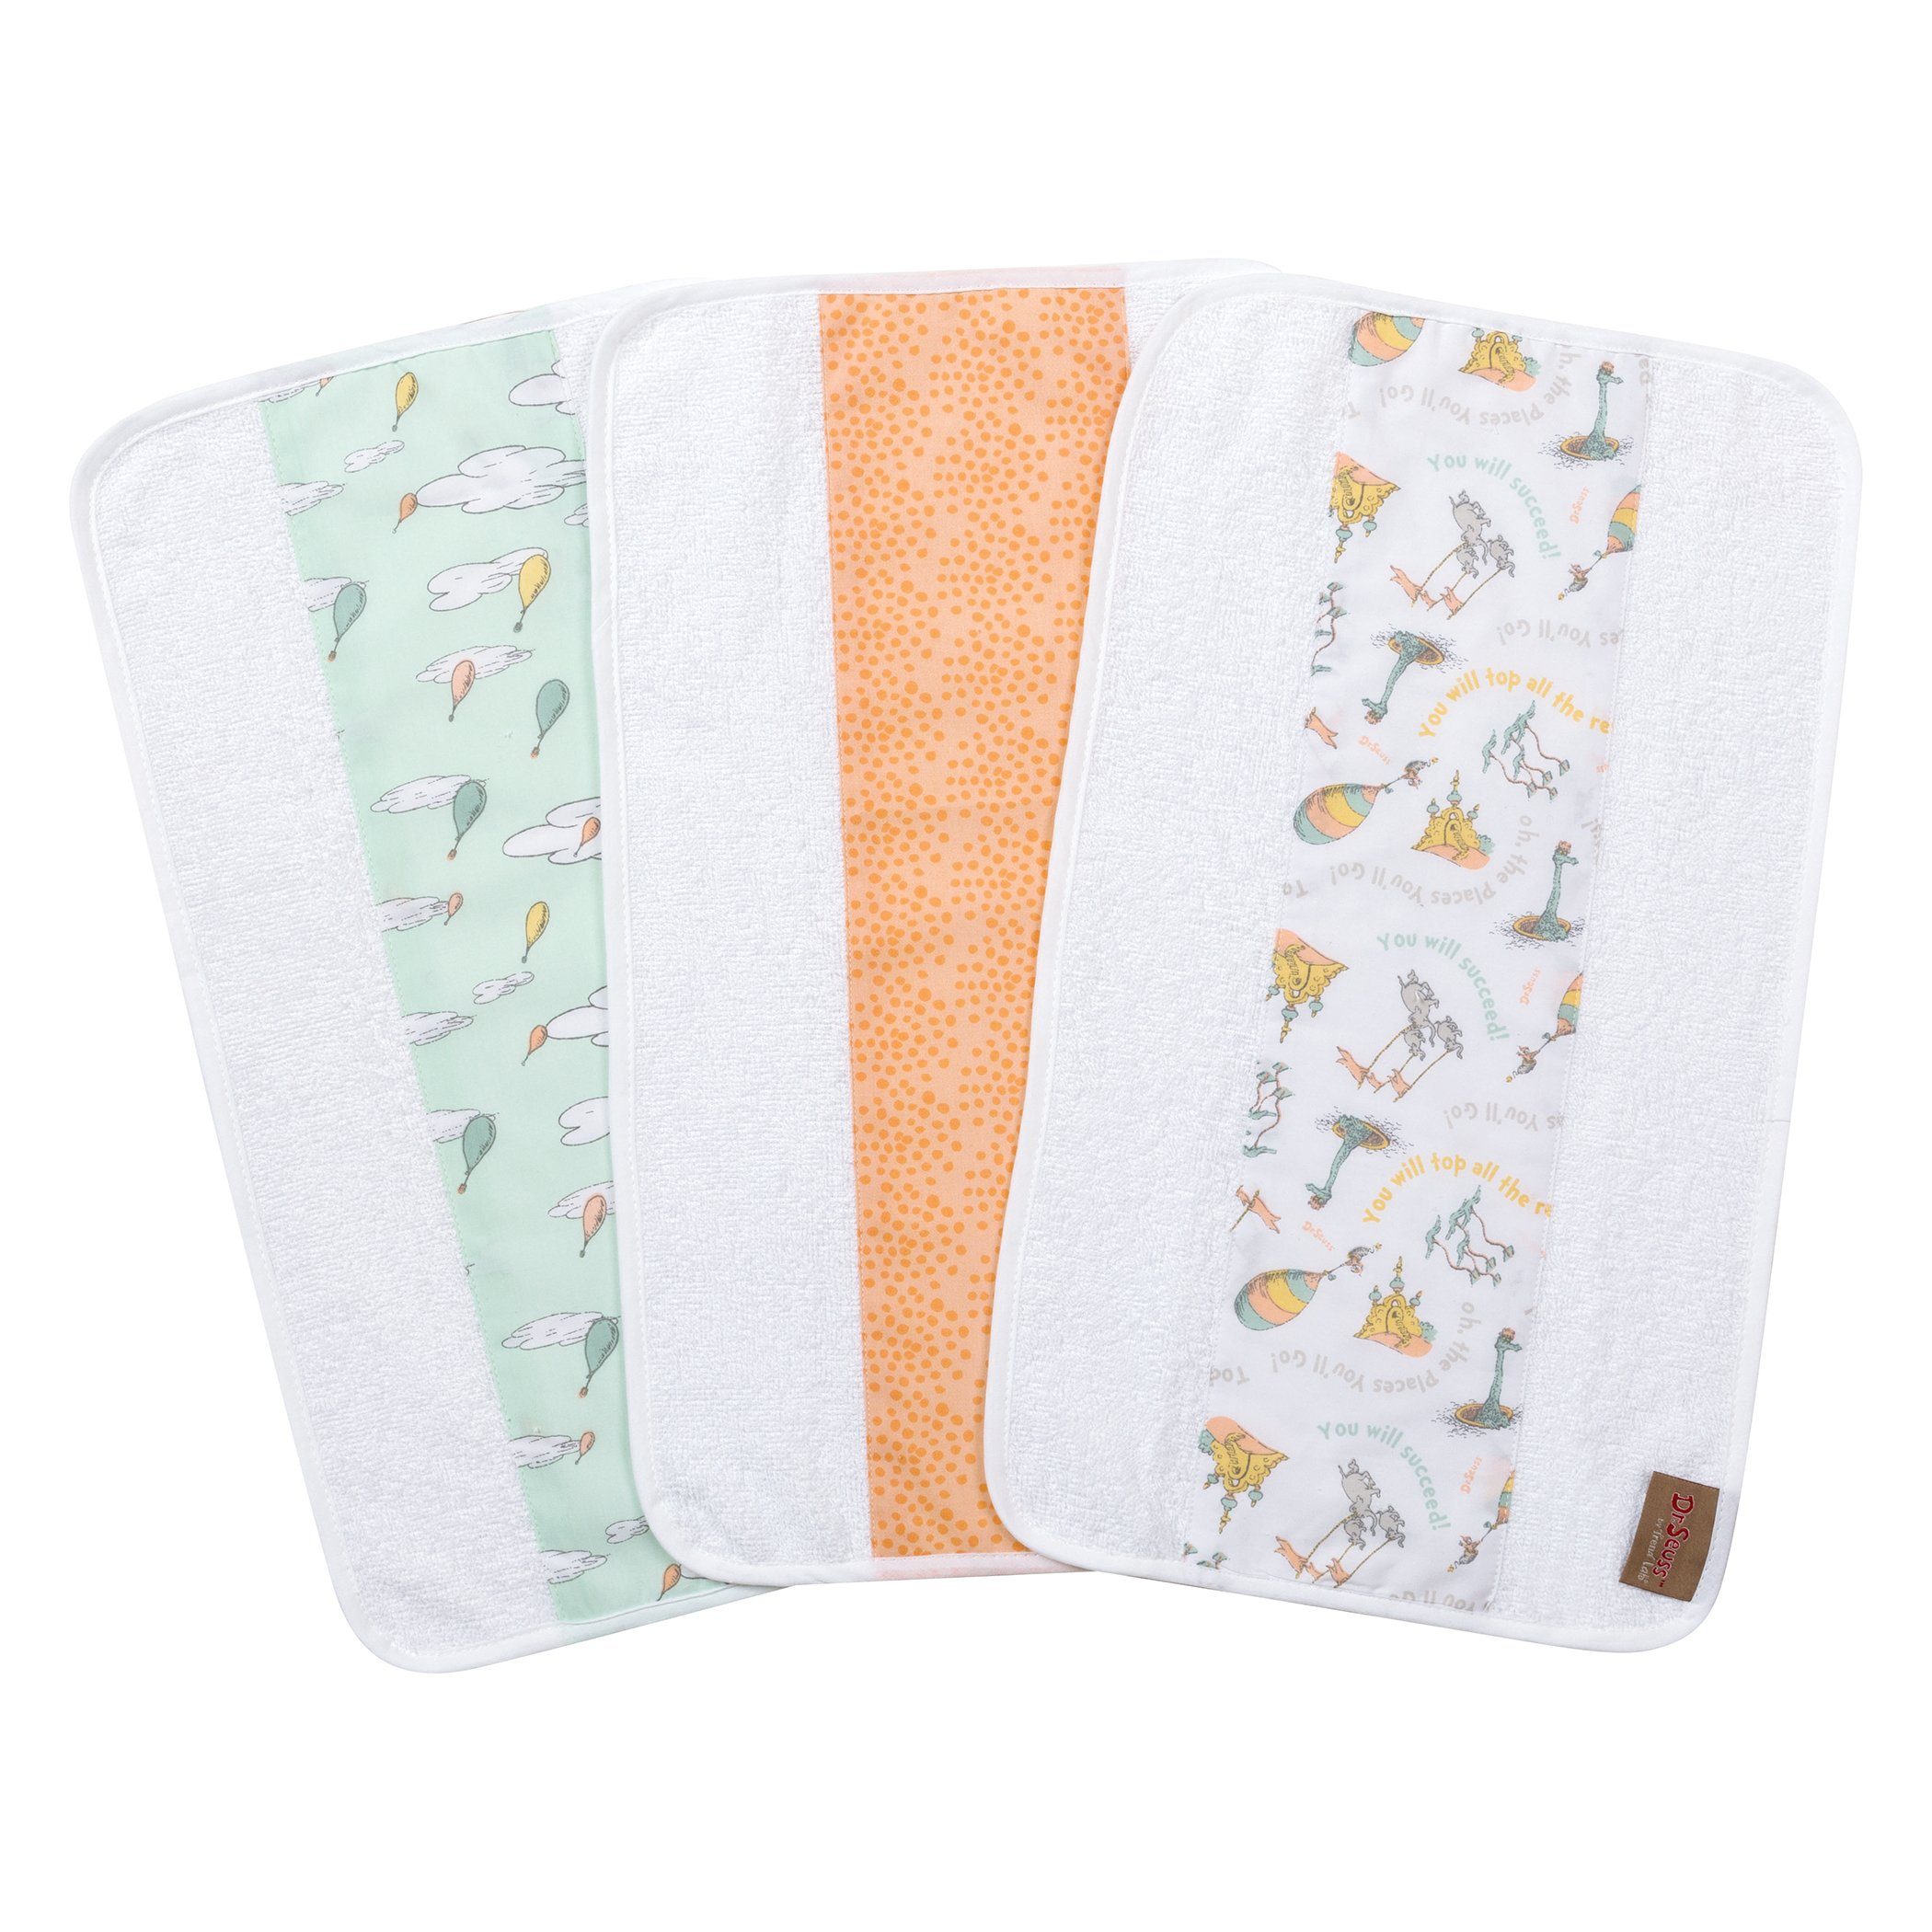 Trend Lab Dr. Seuss by Oh, The Places You'll Go! 3 Pack Jumbo Burp Cloth Set, Aqua, Orange, Yellow, Gray and White by Trend Lab